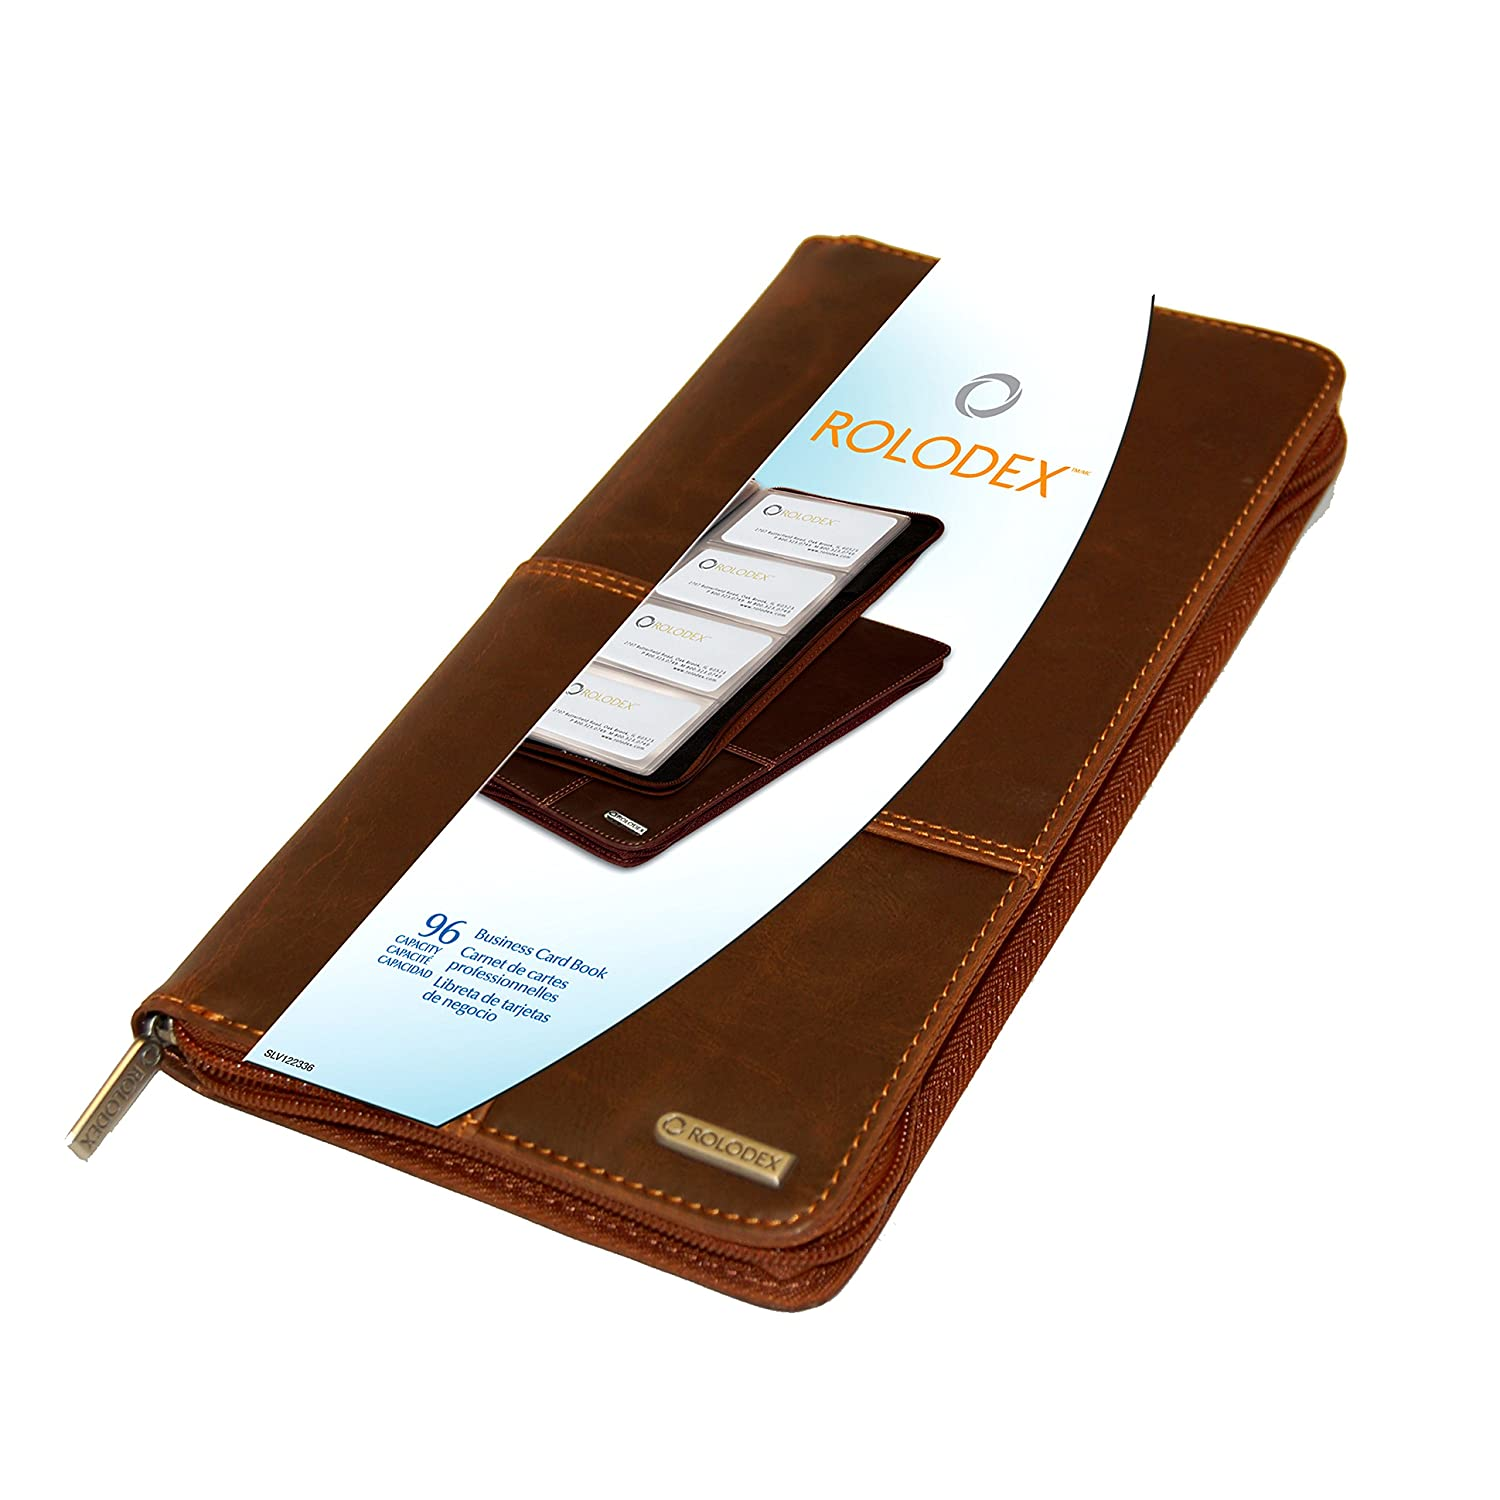 Amazon rolodex explorer collection business card book 96 amazon rolodex explorer collection business card book 96 card brown 22336 business card holders office products magicingreecefo Image collections